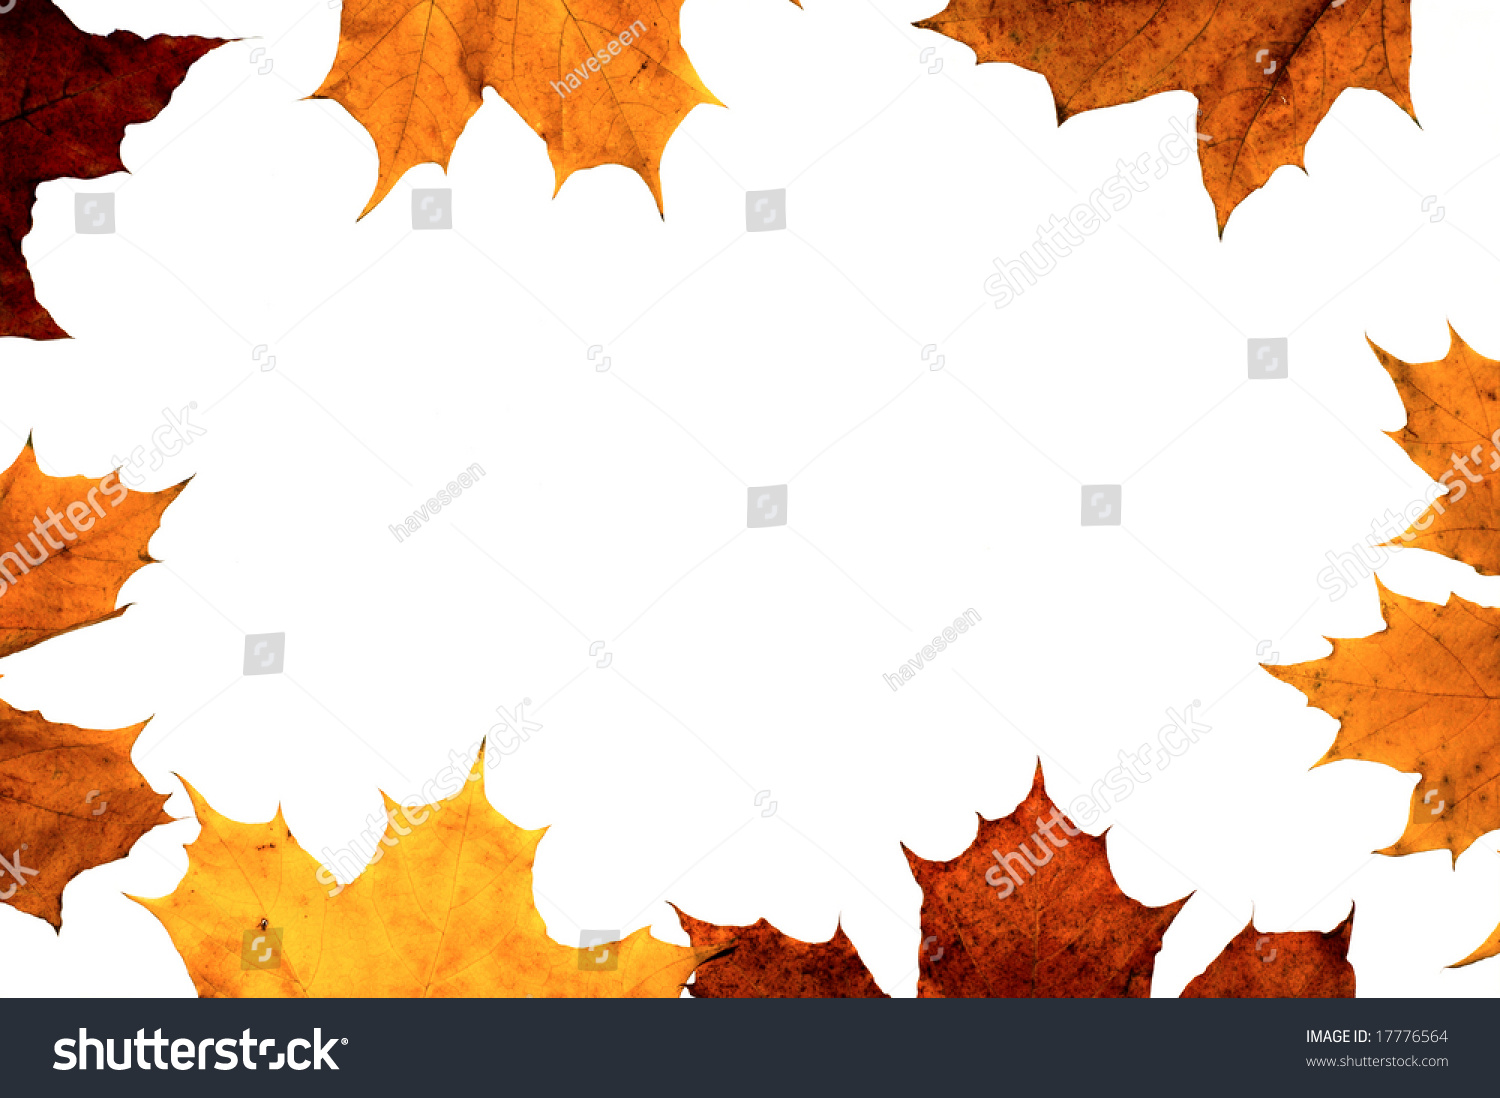 Autumn Maple Leaf Frame Background Stock Photo (Edit Now) 17776564 ...